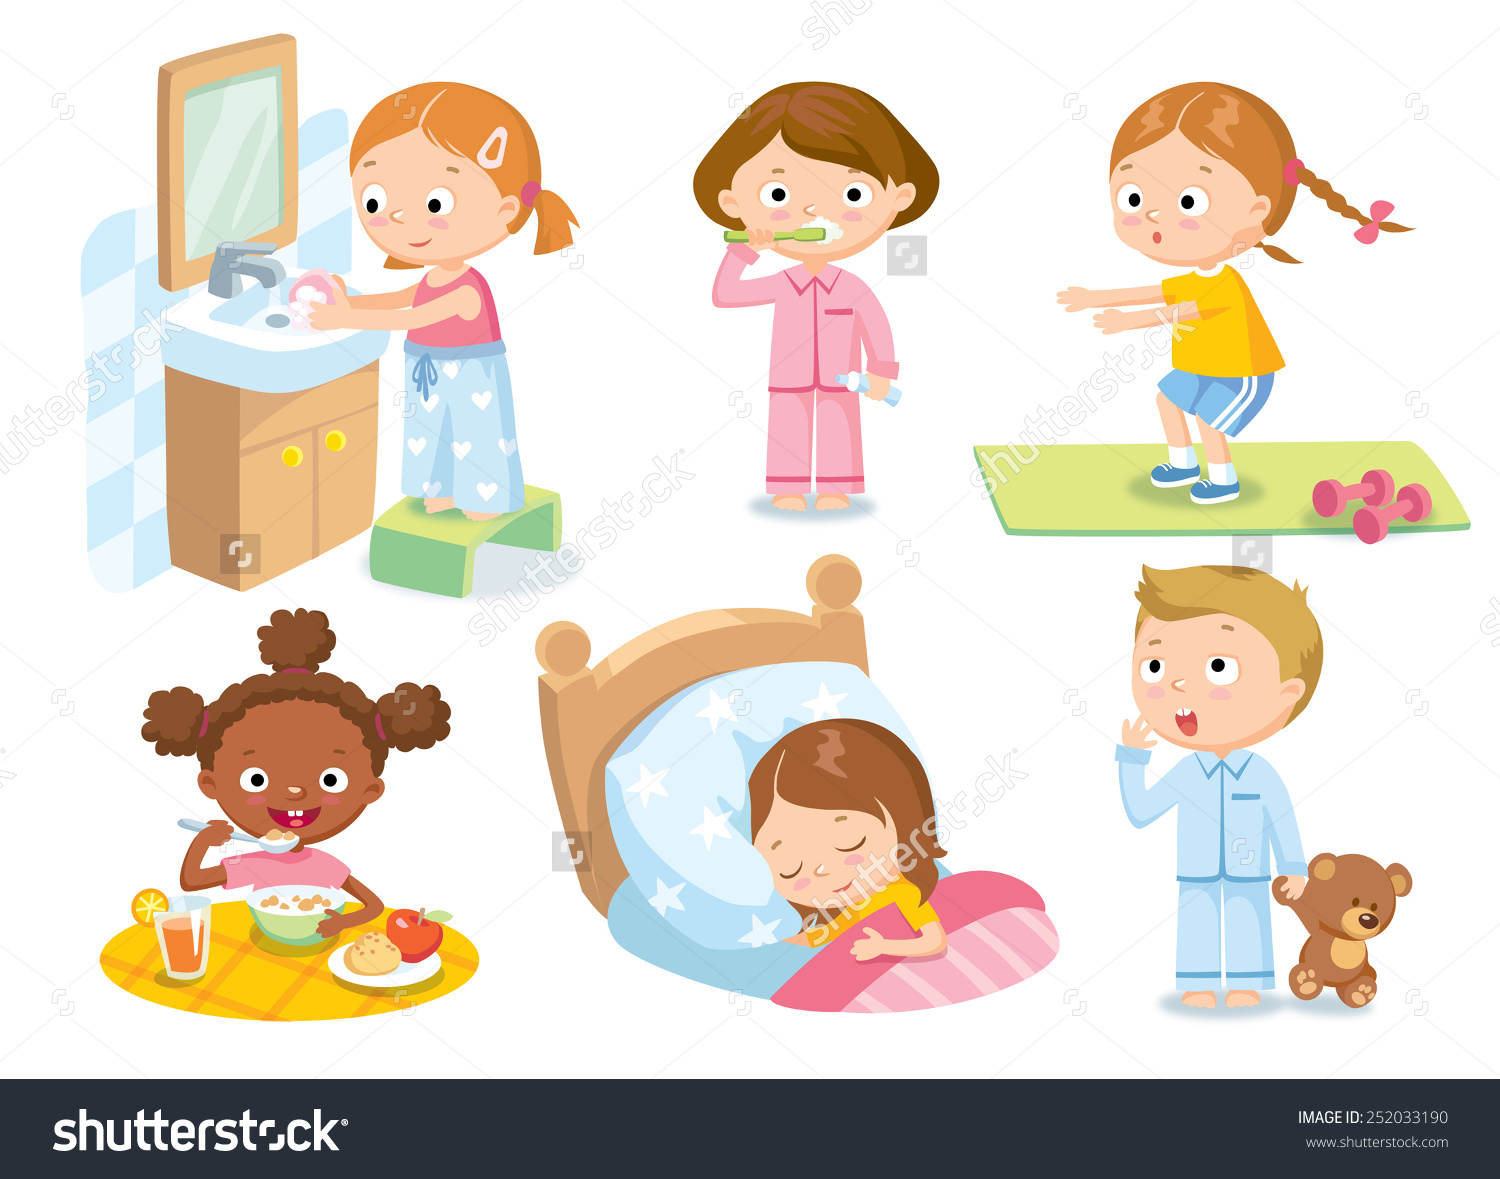 Daily routine clipart 8 » Clipart Station.